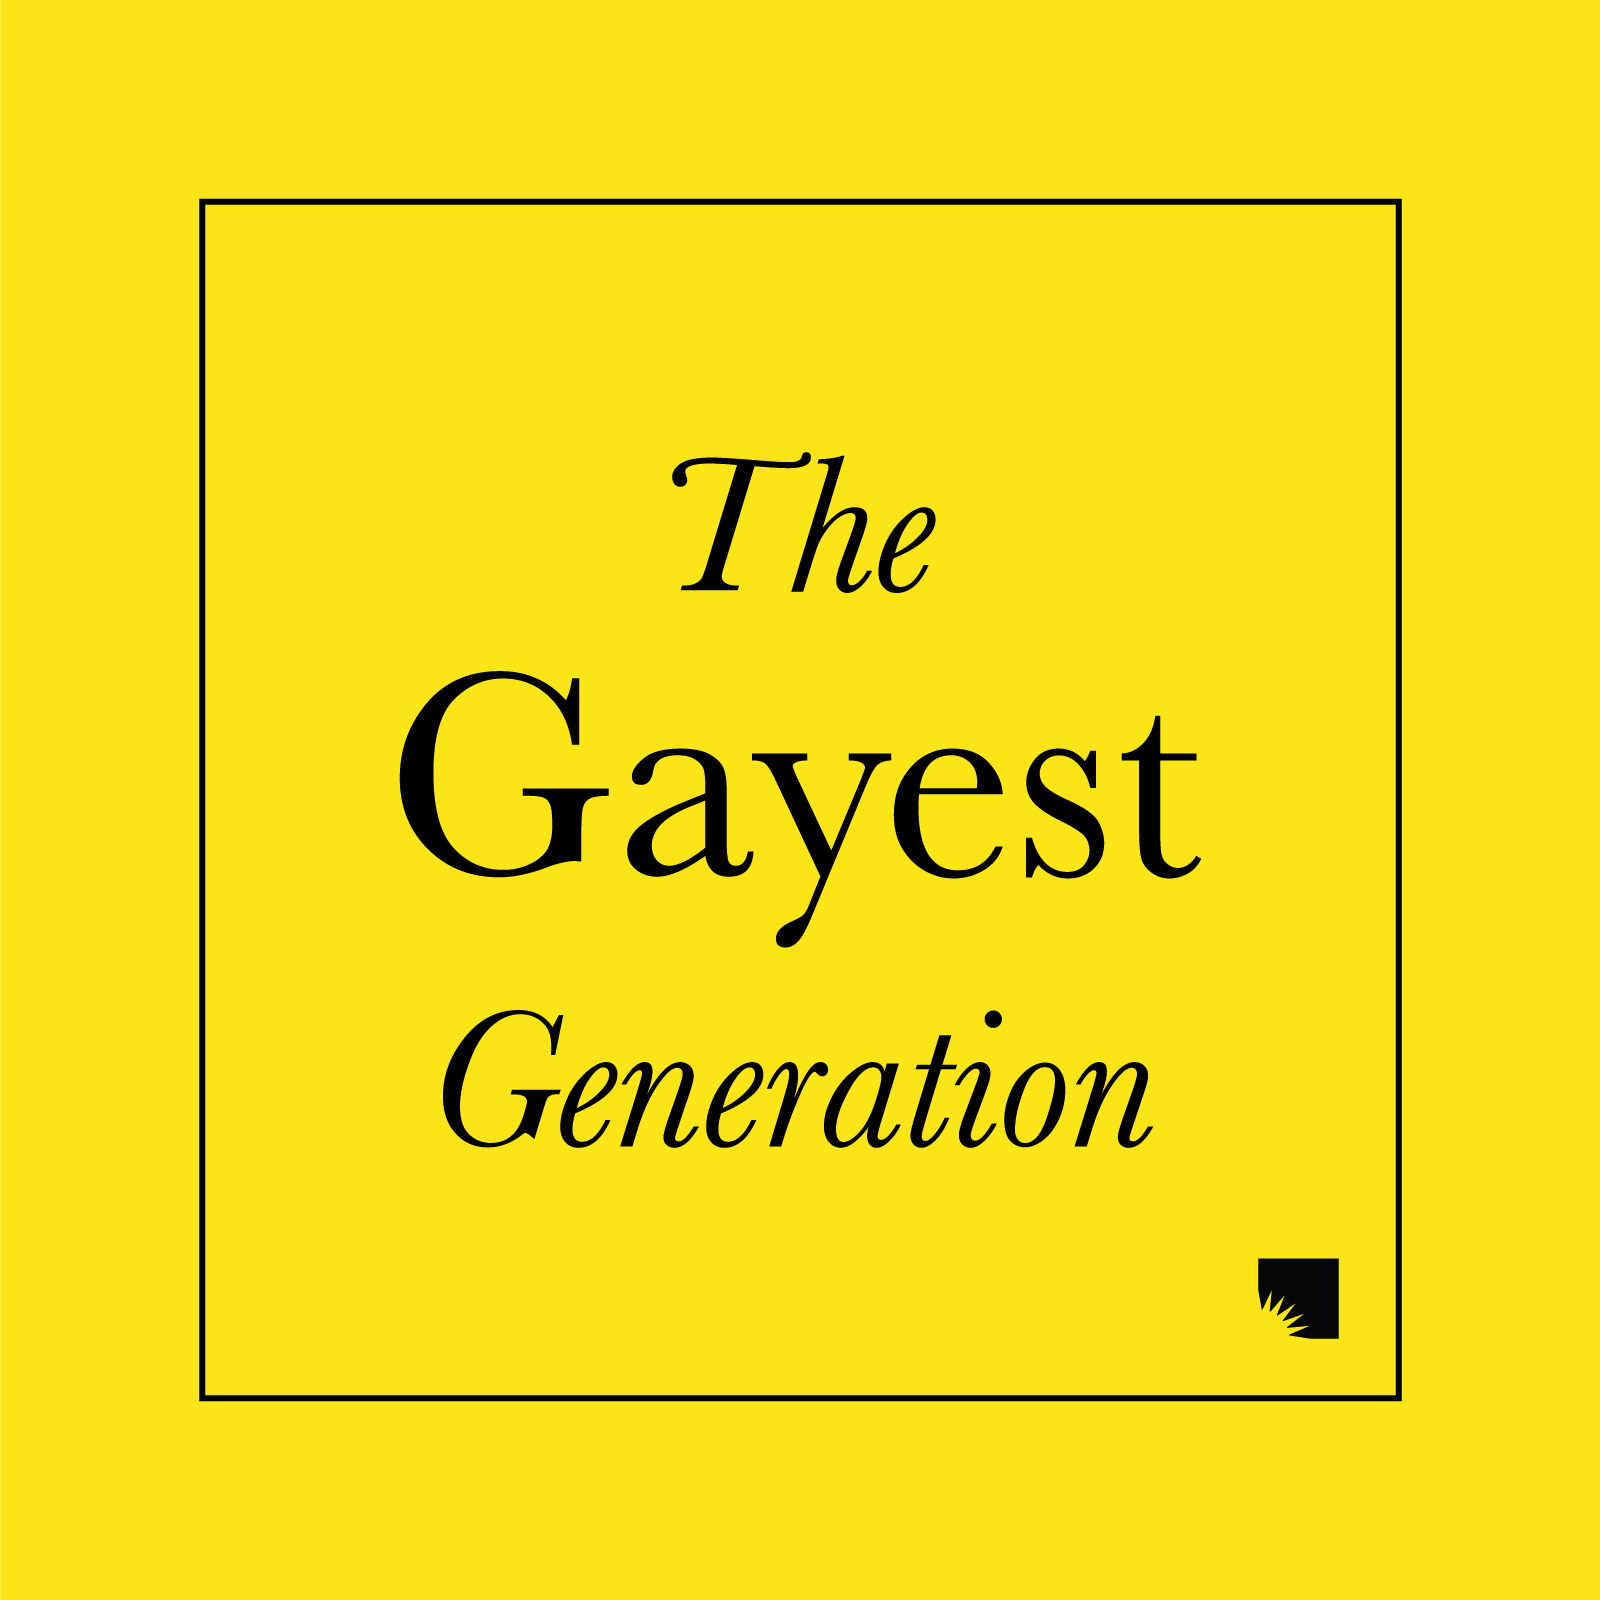 Promotional image for The Gayest Generation Ep. 4 - Maxi Chanel podcast